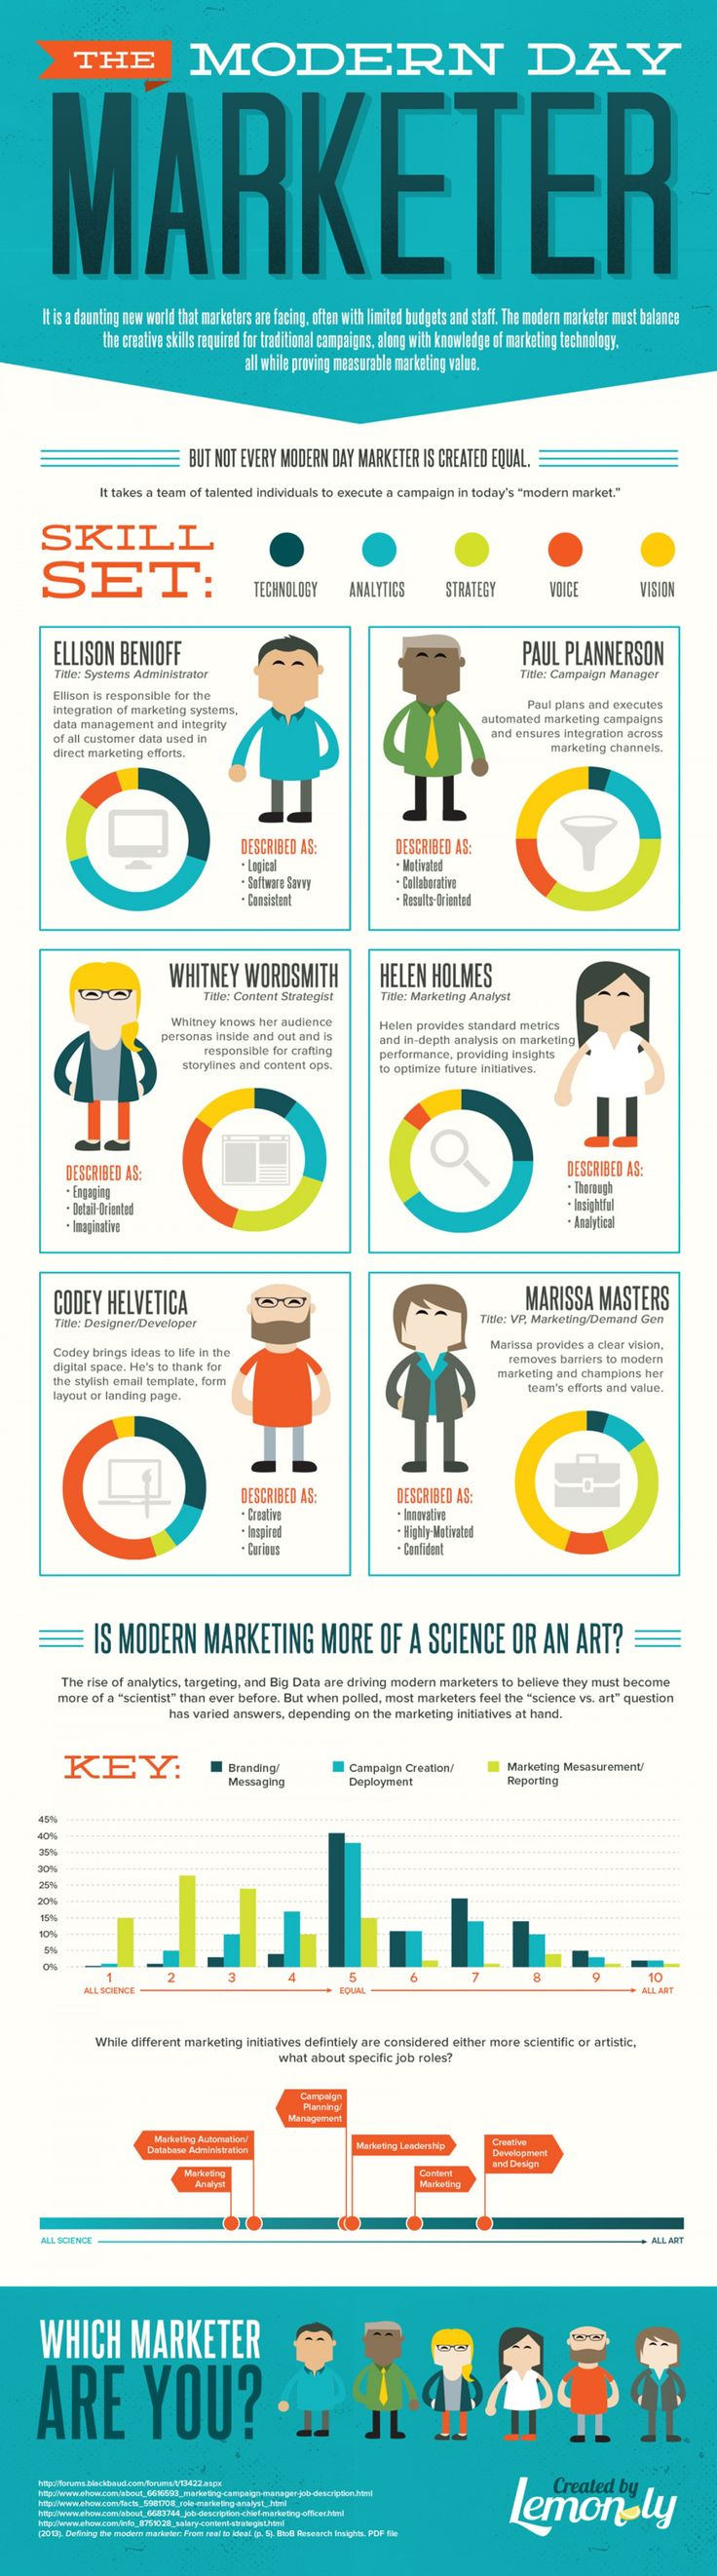 What The Modern Marketer Looks Like (Infographic) image the modern day marketer 5268034448a7e w1500